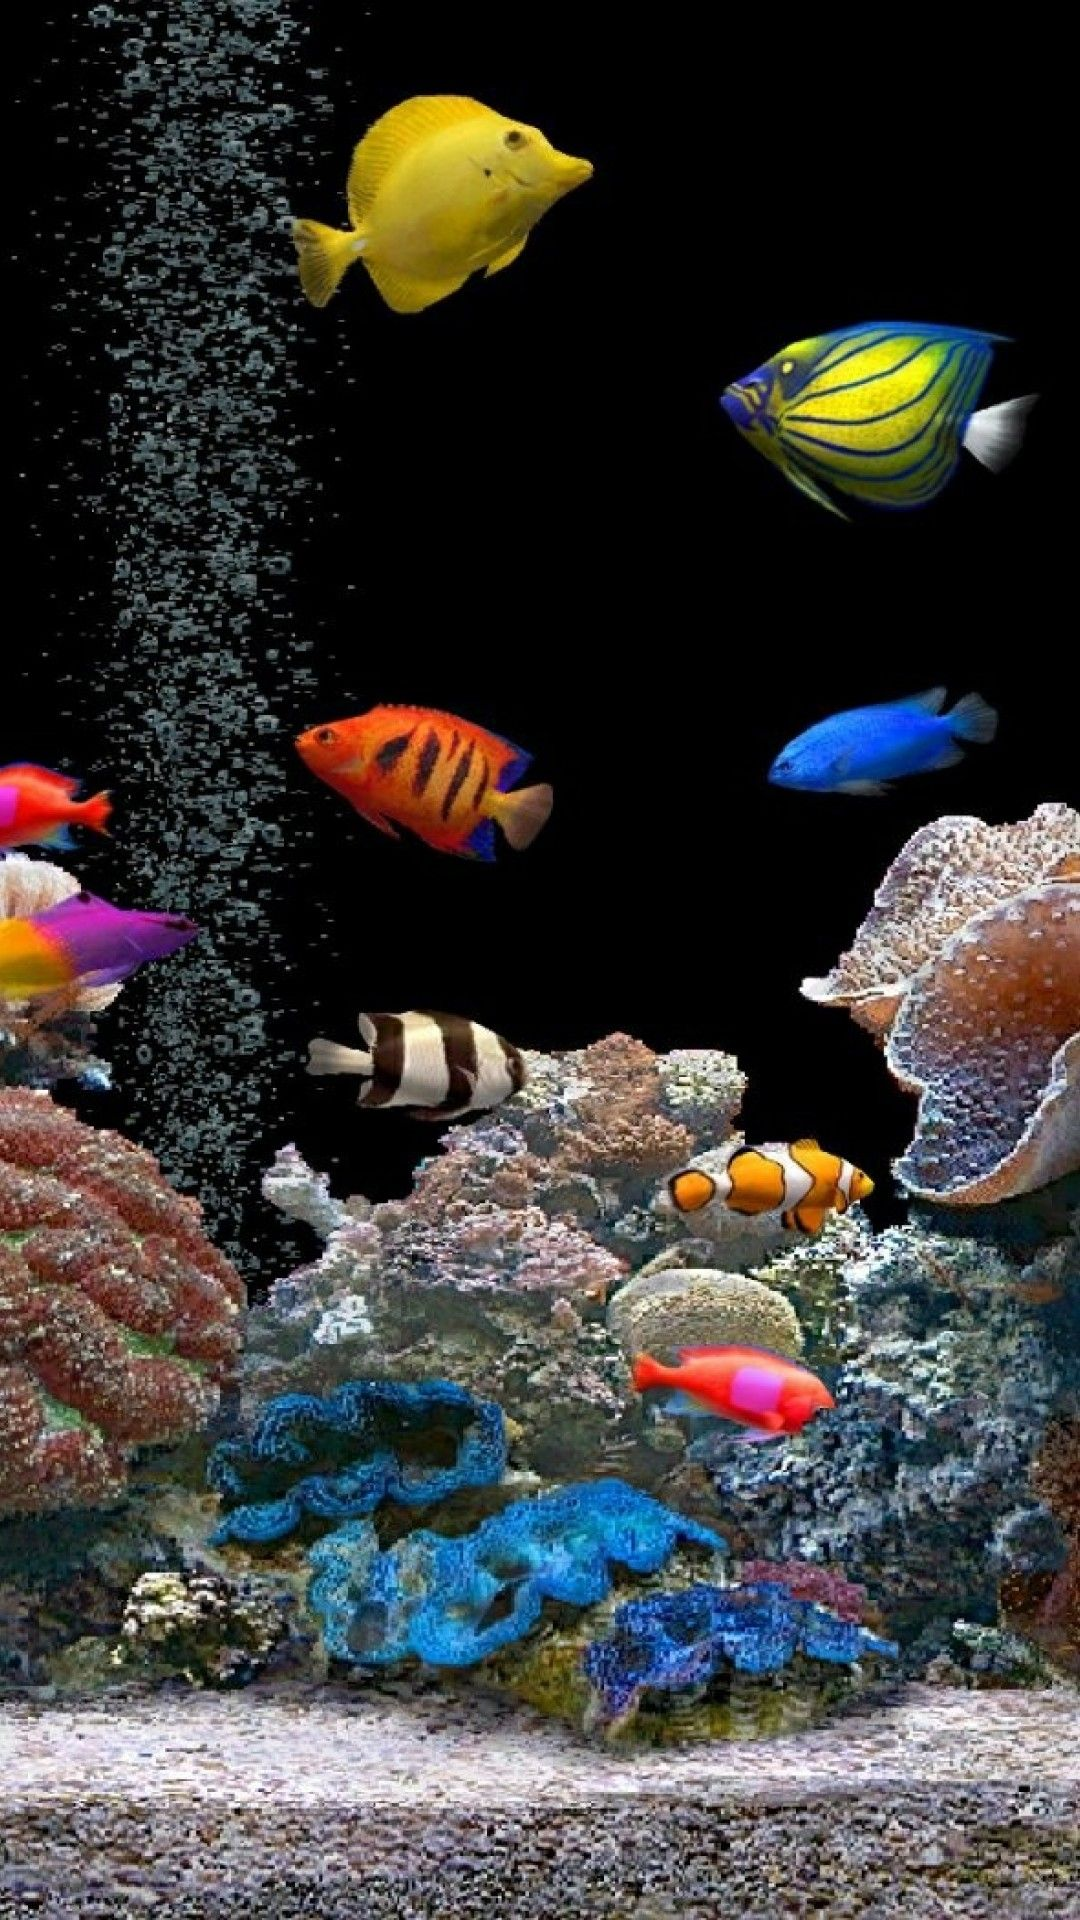 67 3d Live Wallpapers On Wallpaperplay Live Fish Wallpaper Live Wallpaper Iphone Fish Wallpaper